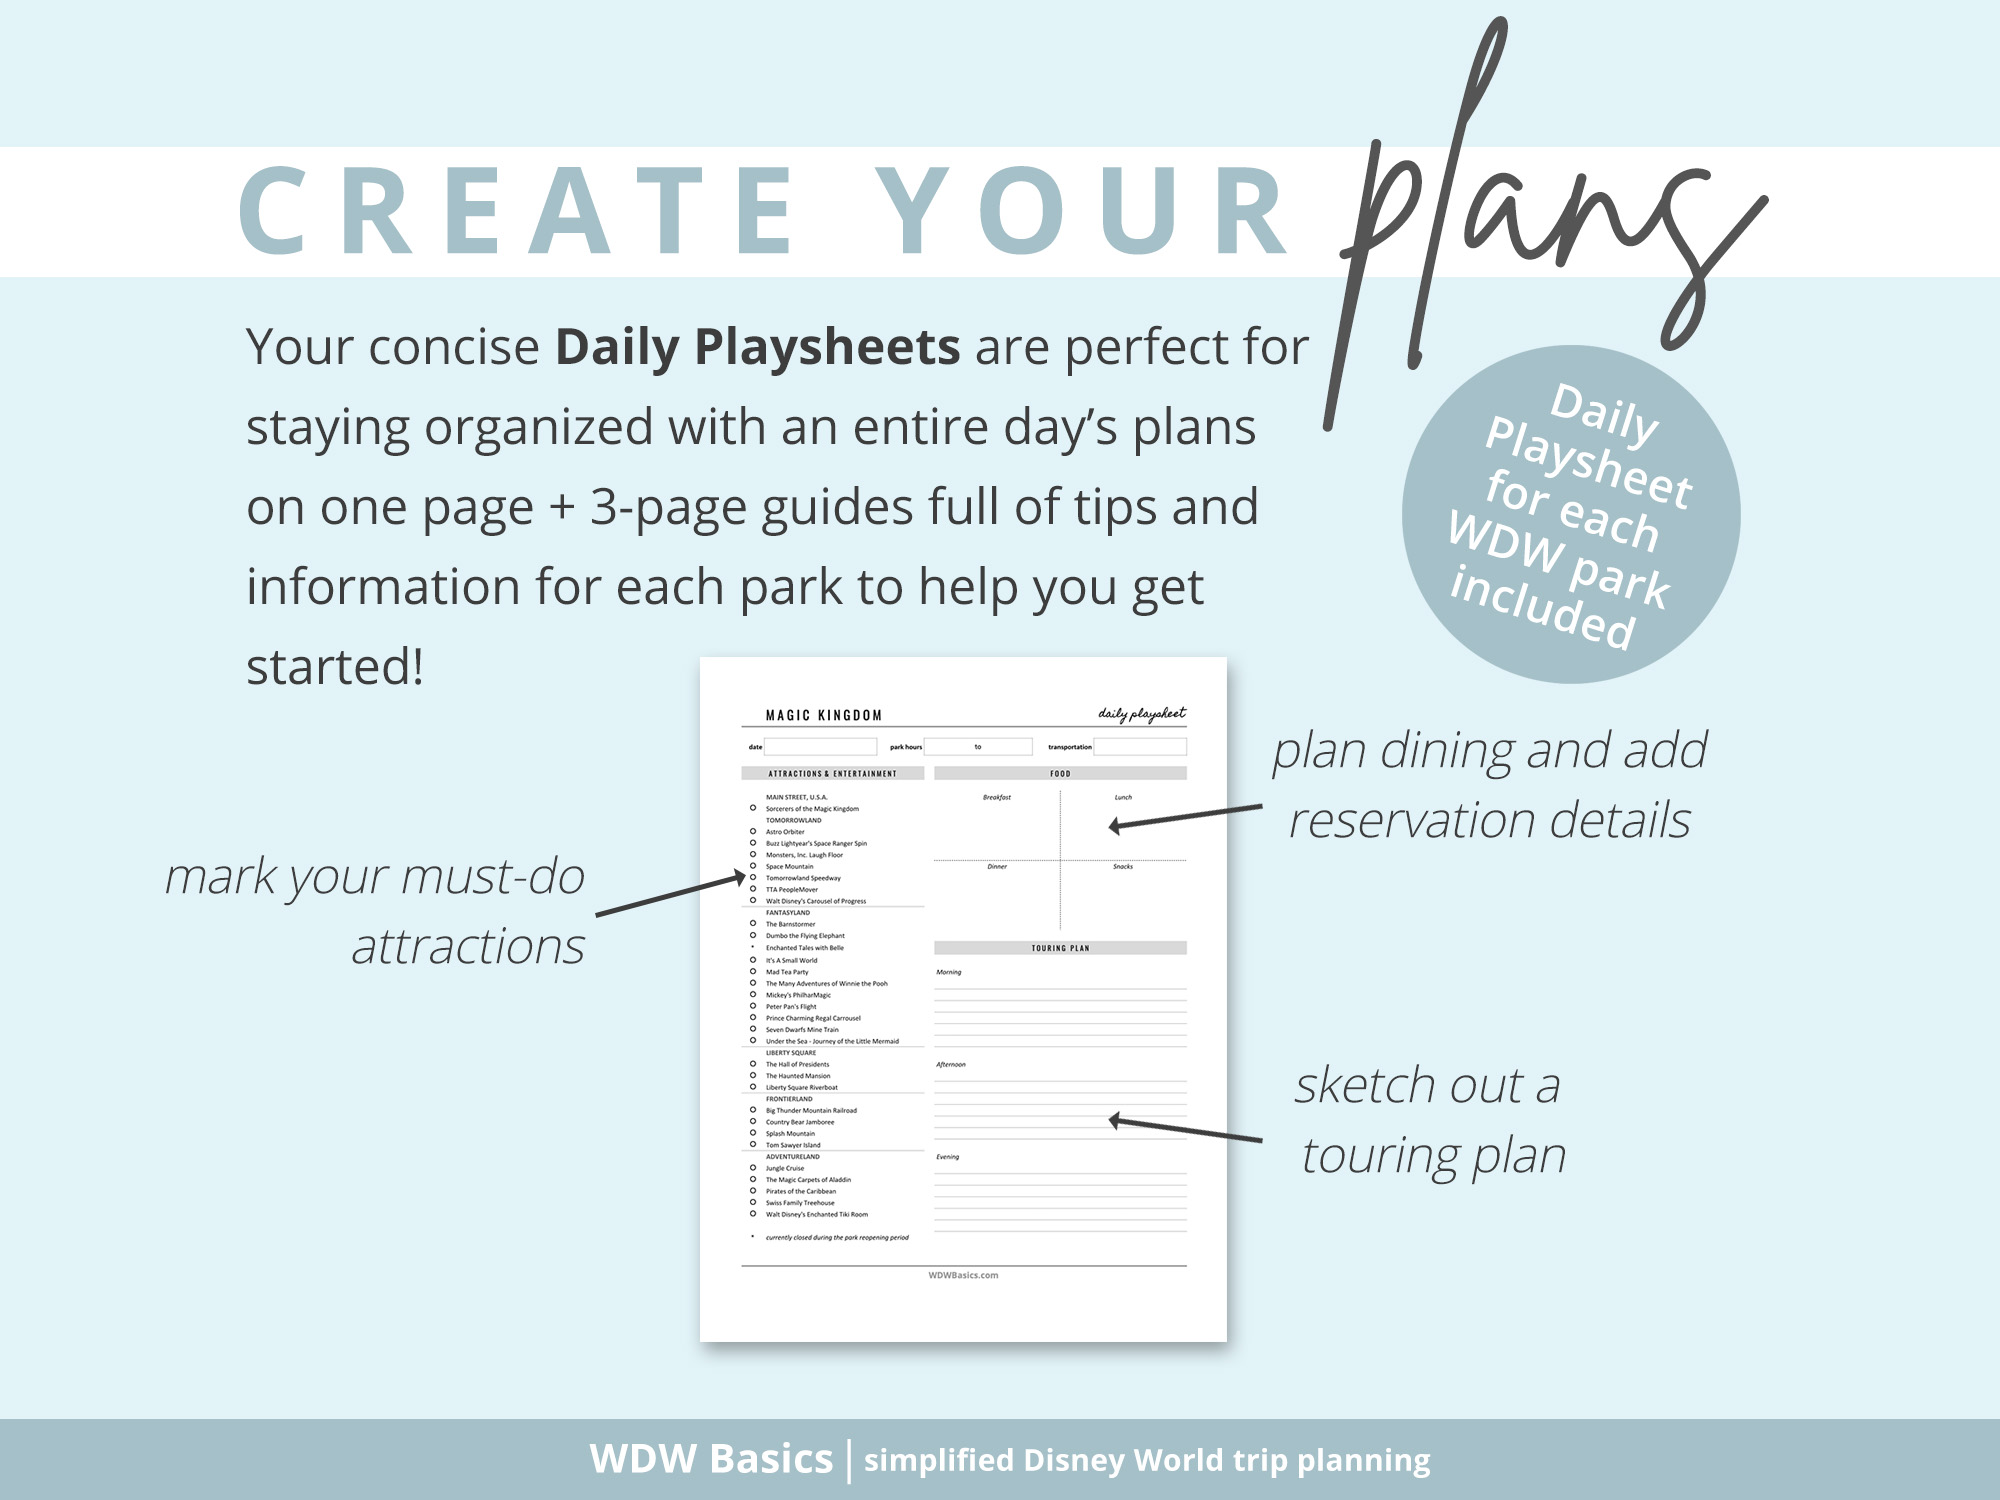 Create Your Plans